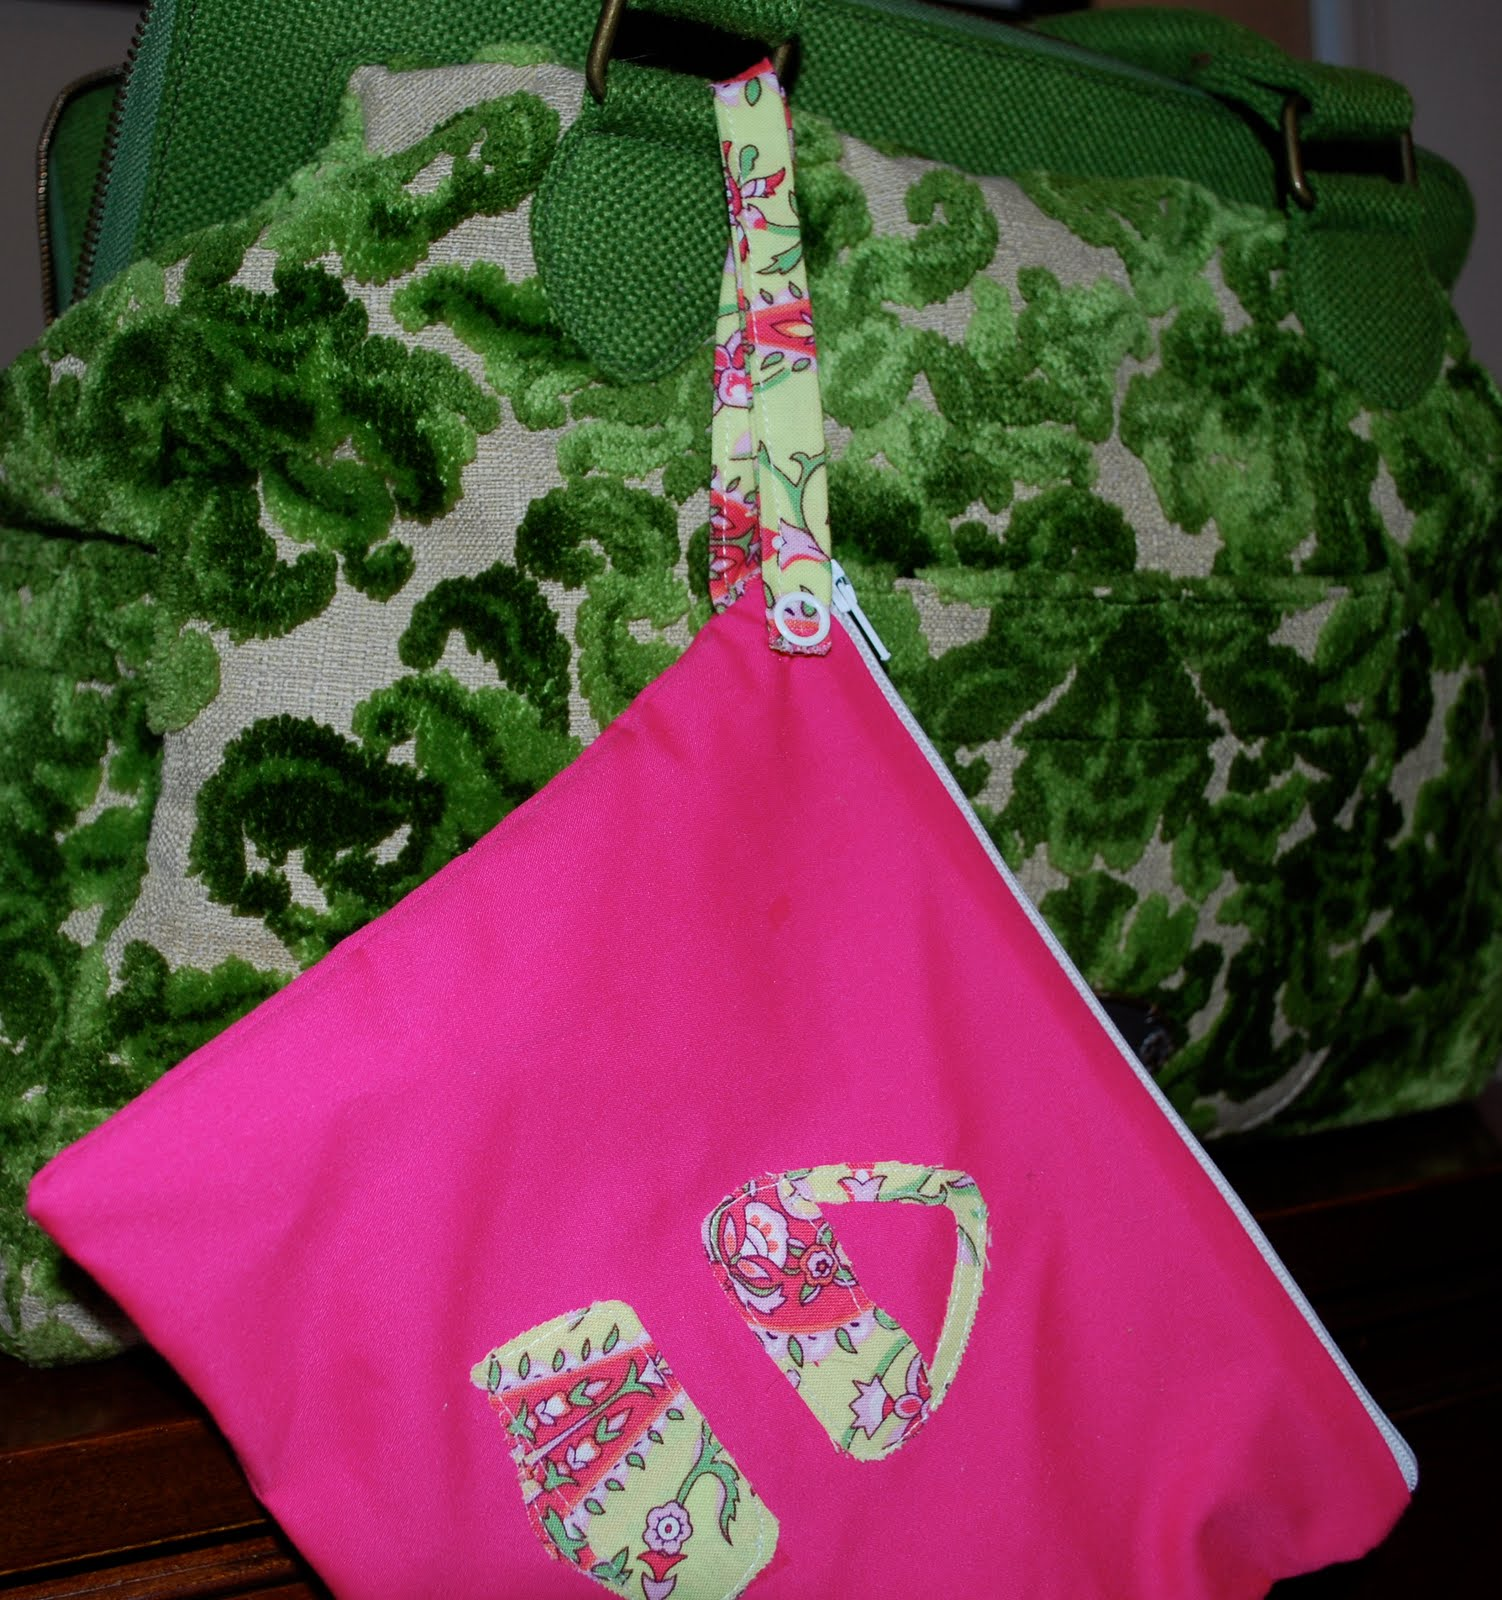 2 Giggle Boxes Wet Bathing Suit Bag With Download A Tutorial